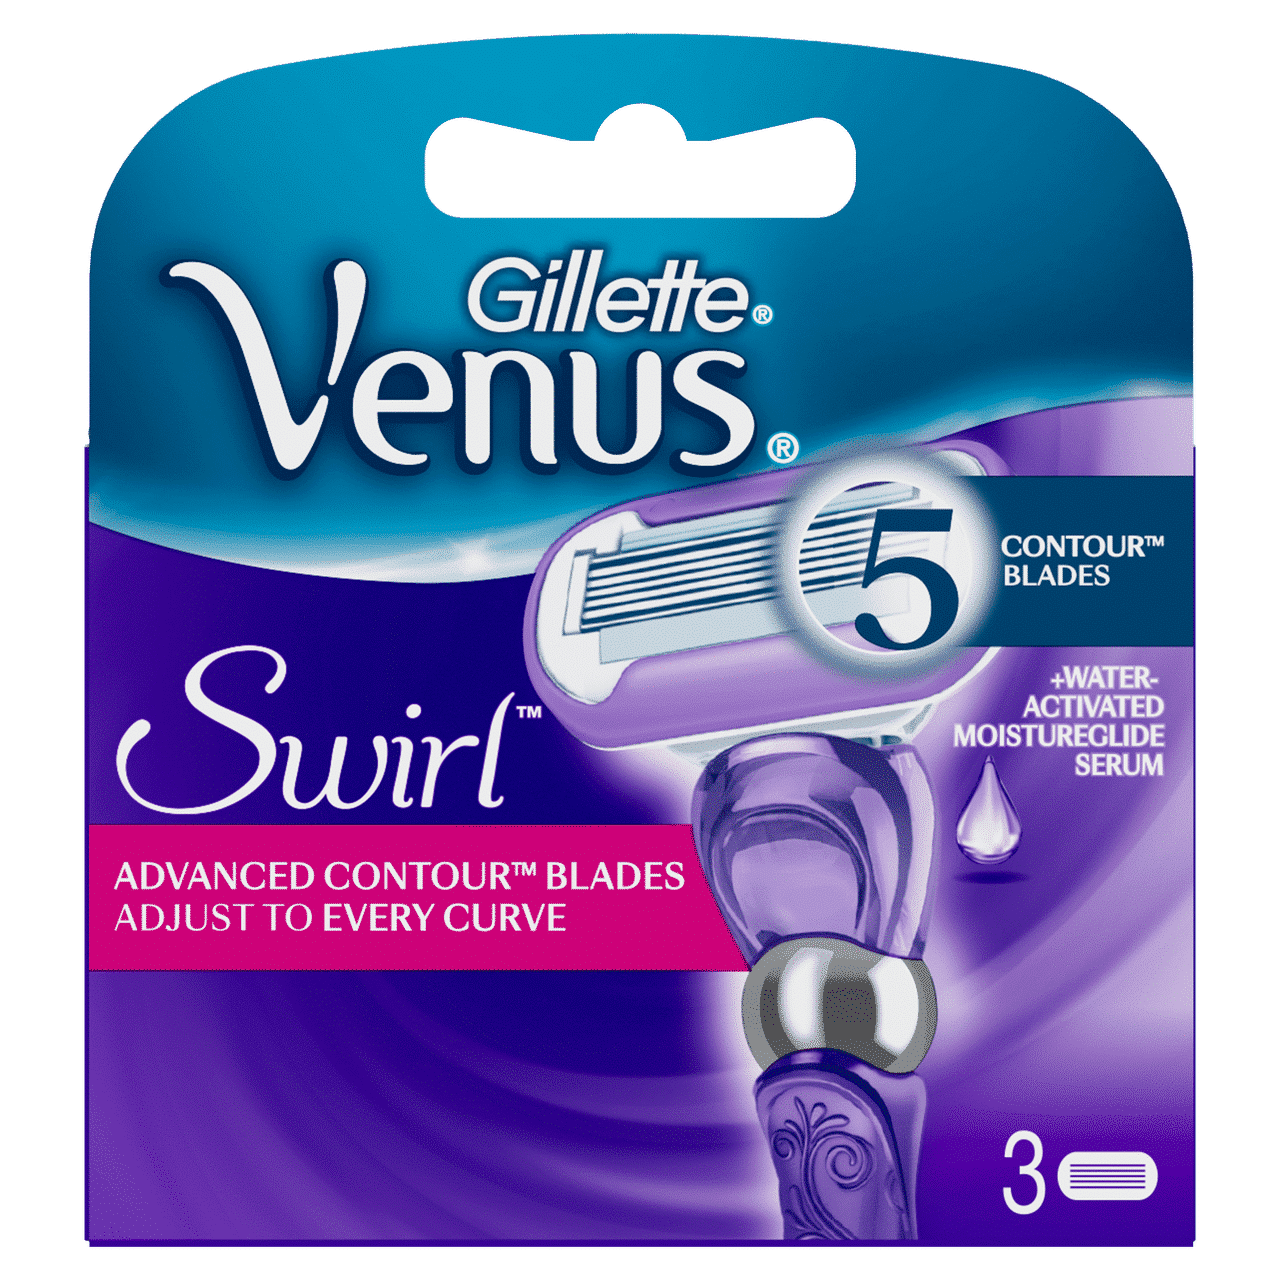 GILLETTE VENUS SWIRL CARTRIDGES by 3 blades